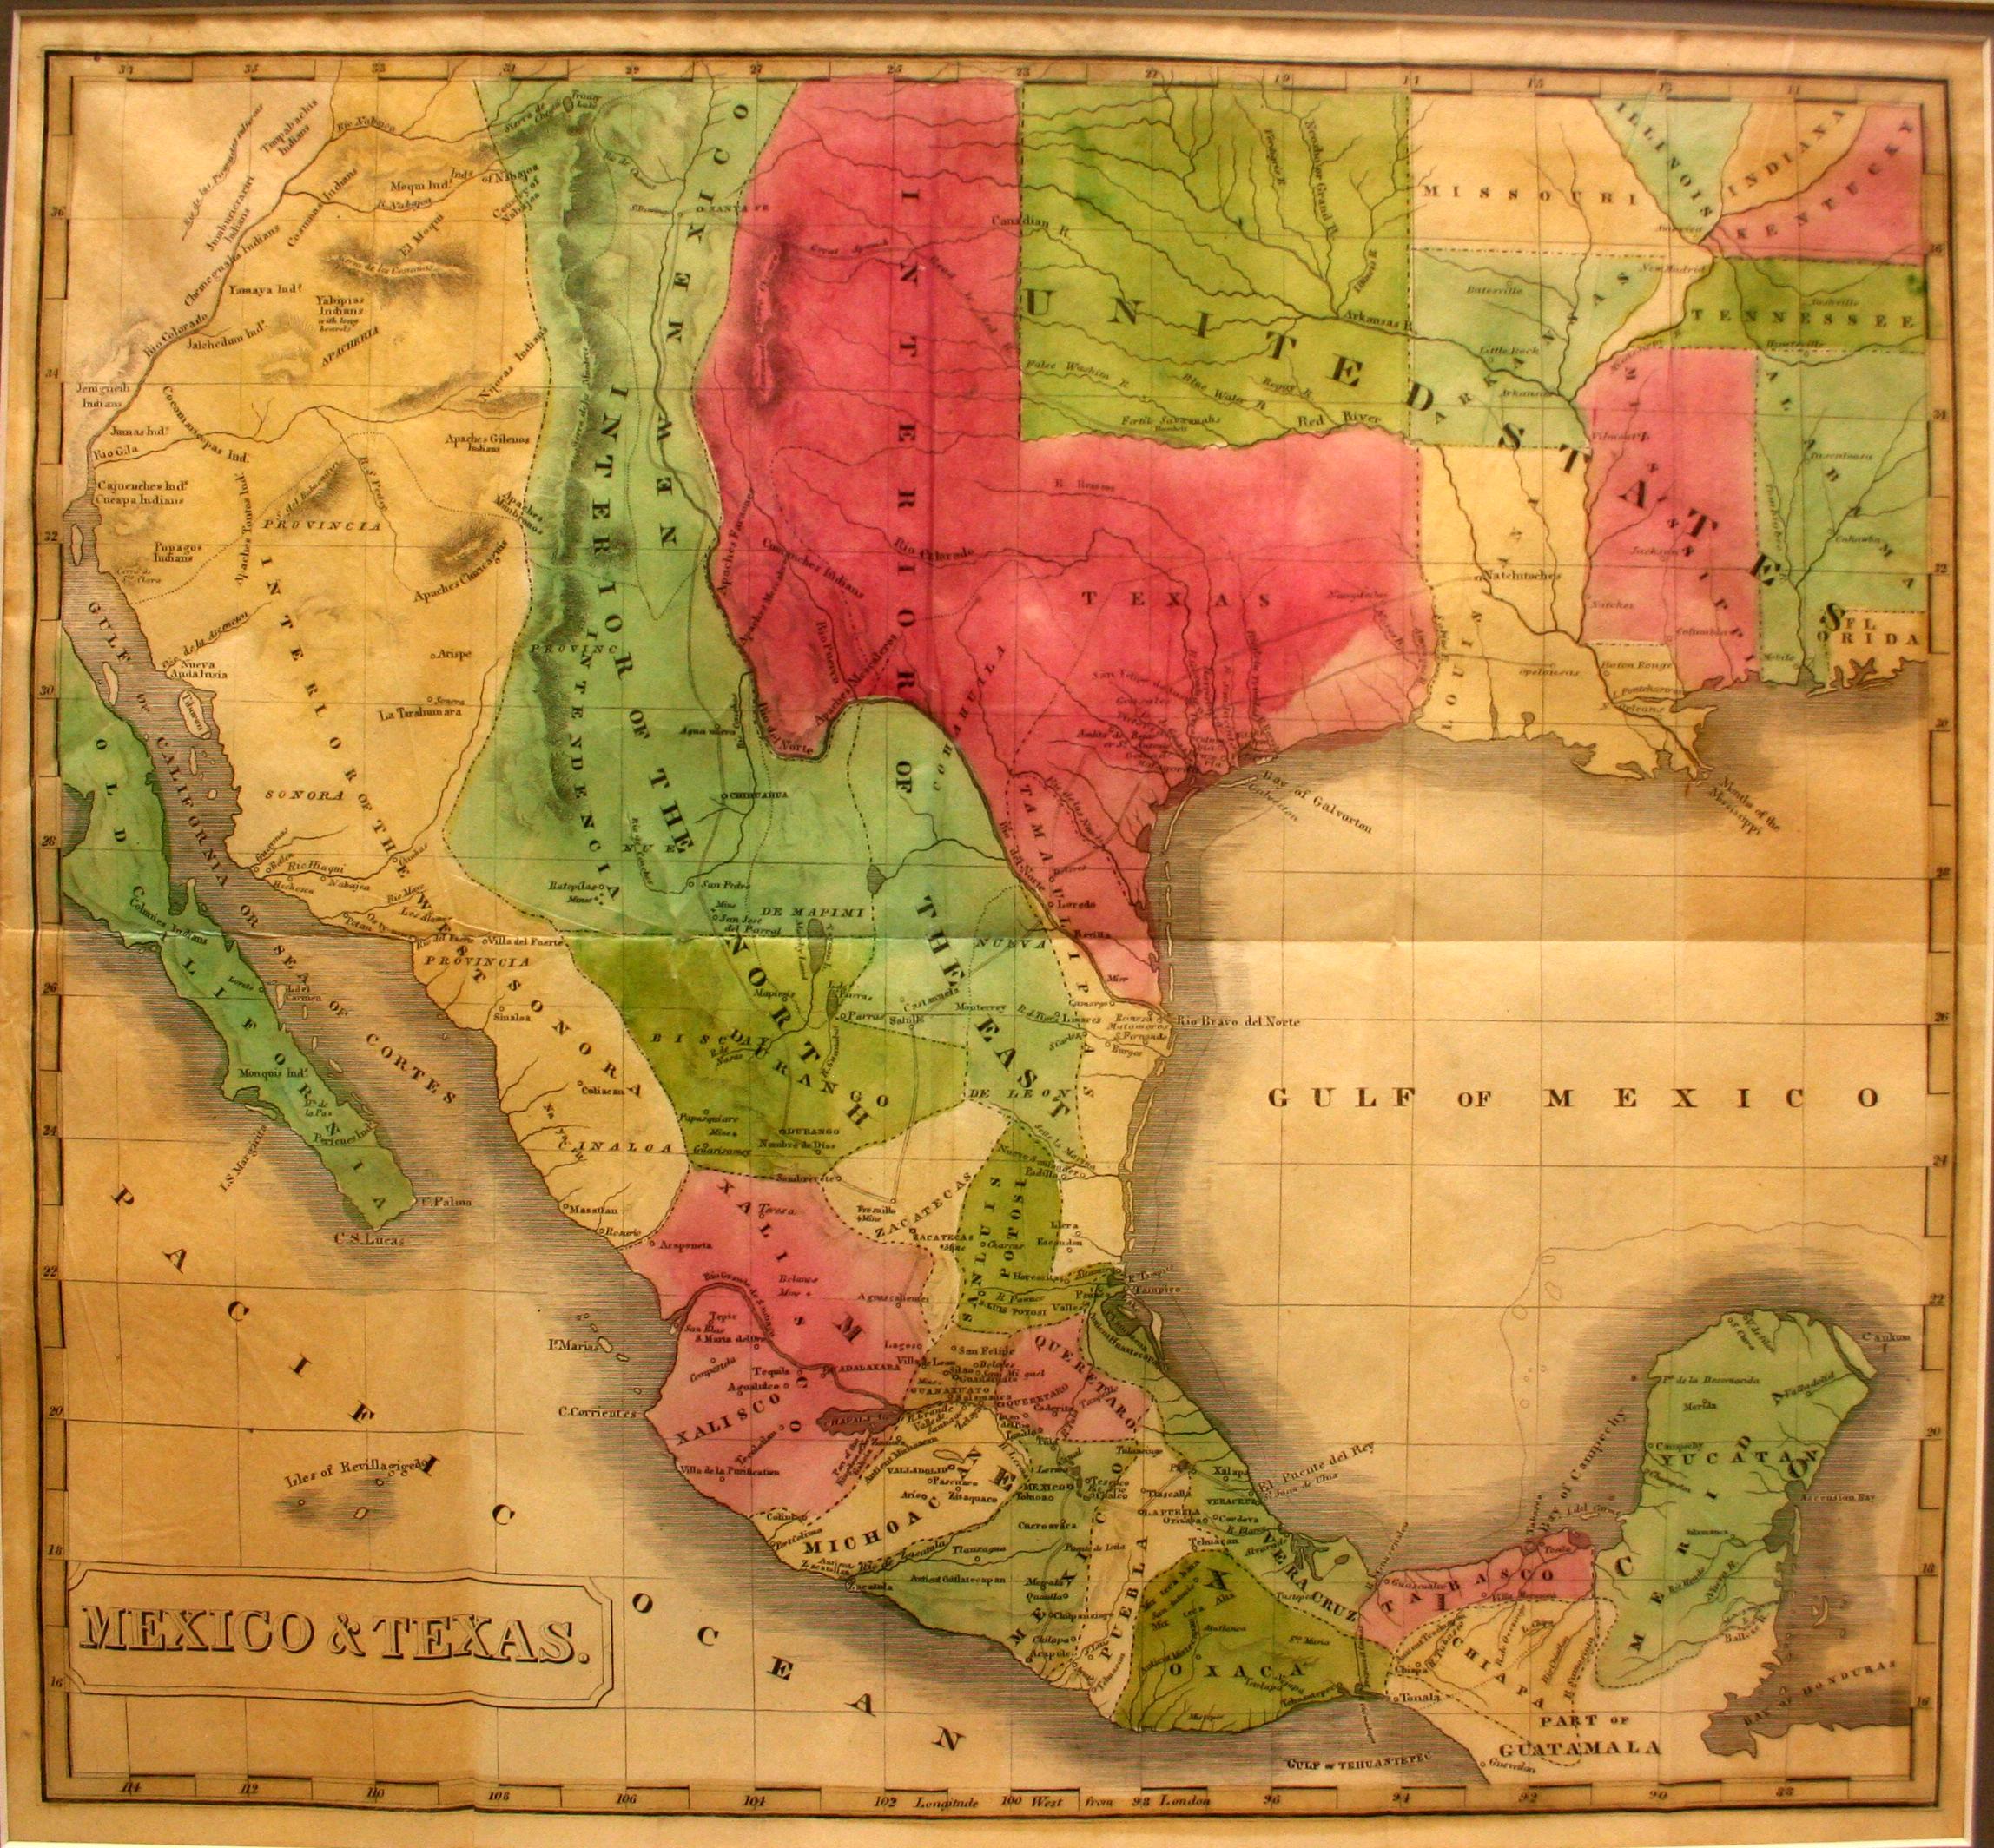 this 1837 map shows the republic of texas extending all the way to the rio grande and north to the 42nd parallel as claimed by texas and agreed to by santa